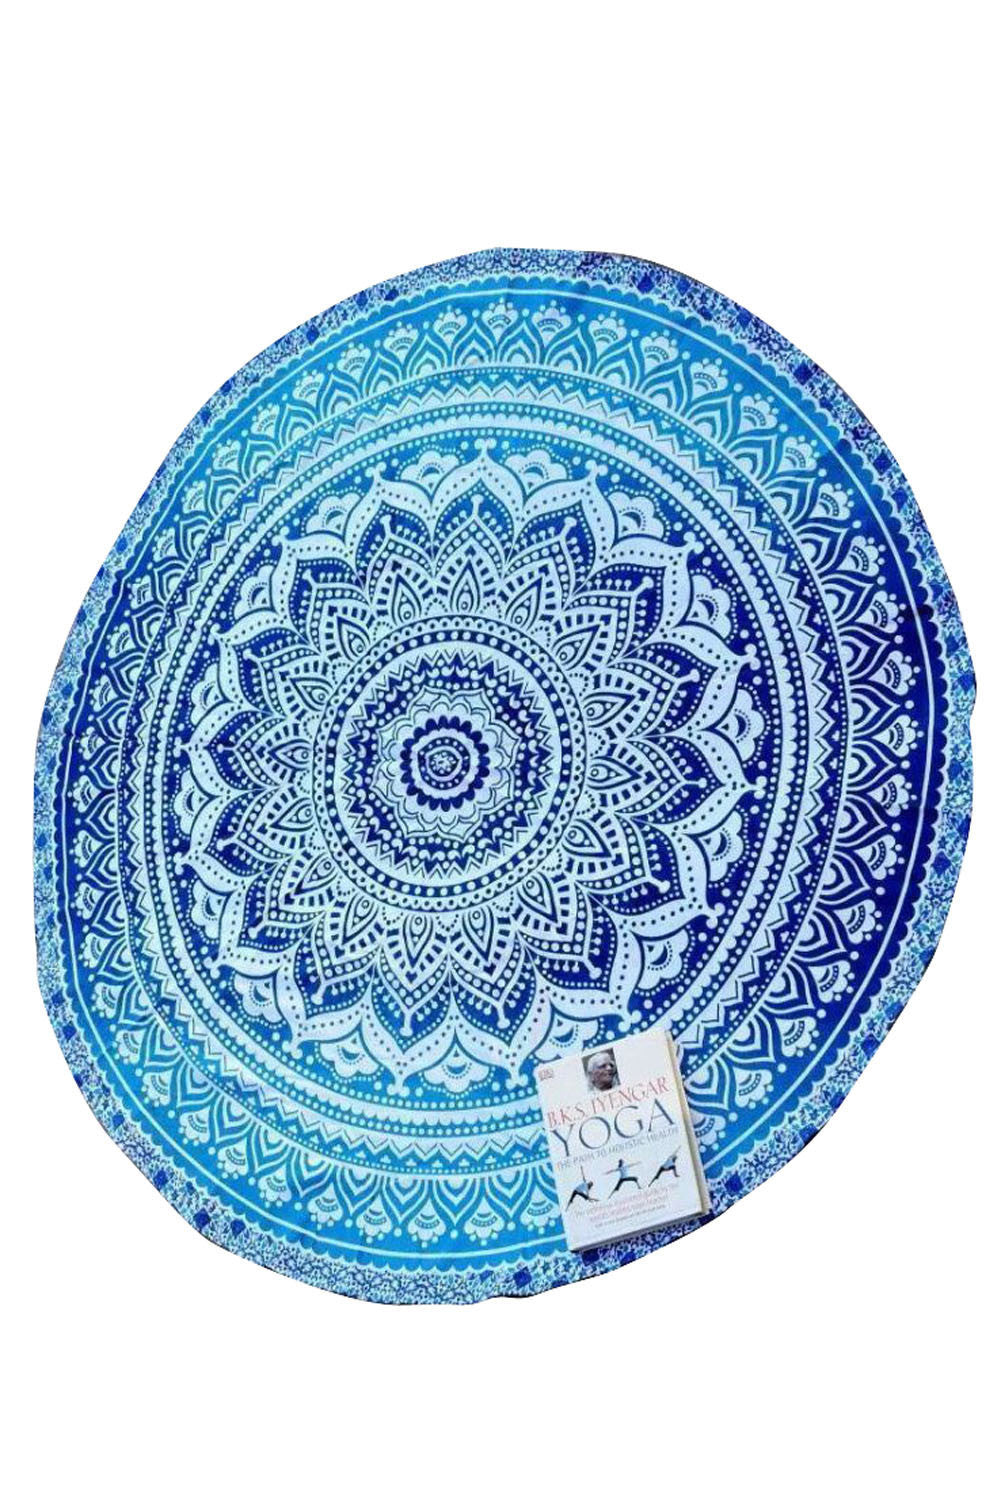 Round Picnic Beach Throw Blanket Home Decor Tapestry- Blue